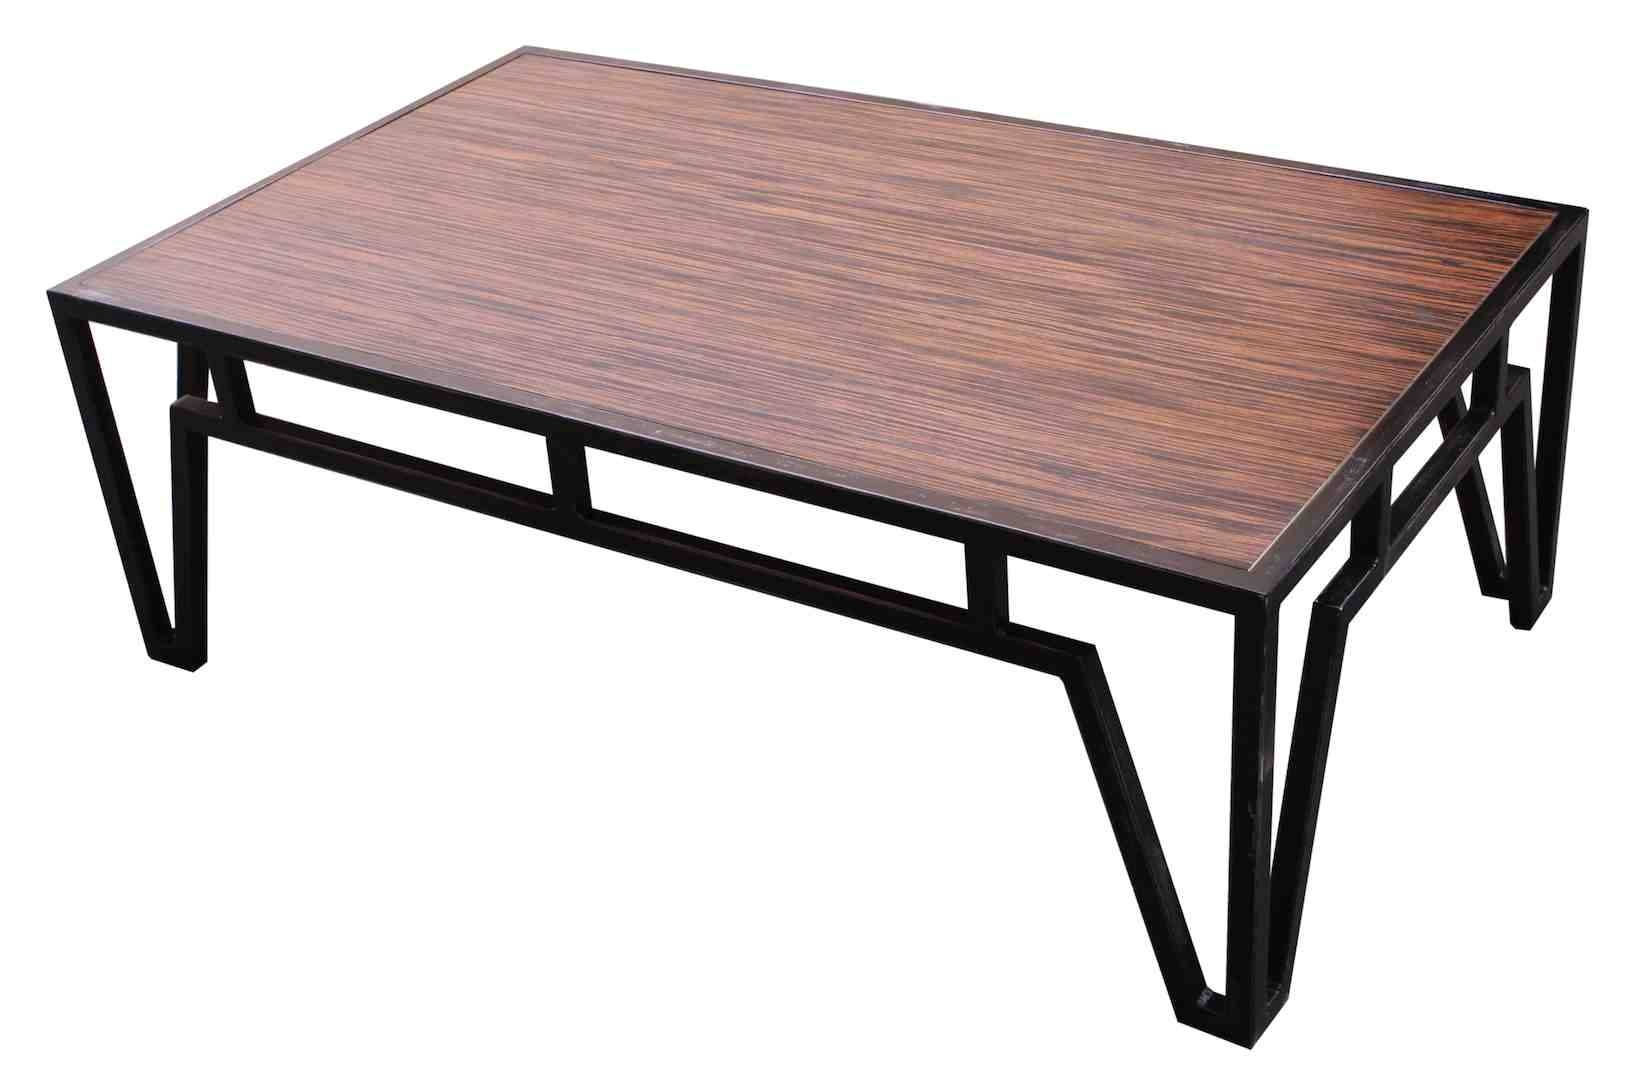 Coffee Table: Surprising Wood Metal Coffee Table Ideas Round Wood inside Wood And Steel Coffee Table (Image 2 of 15)